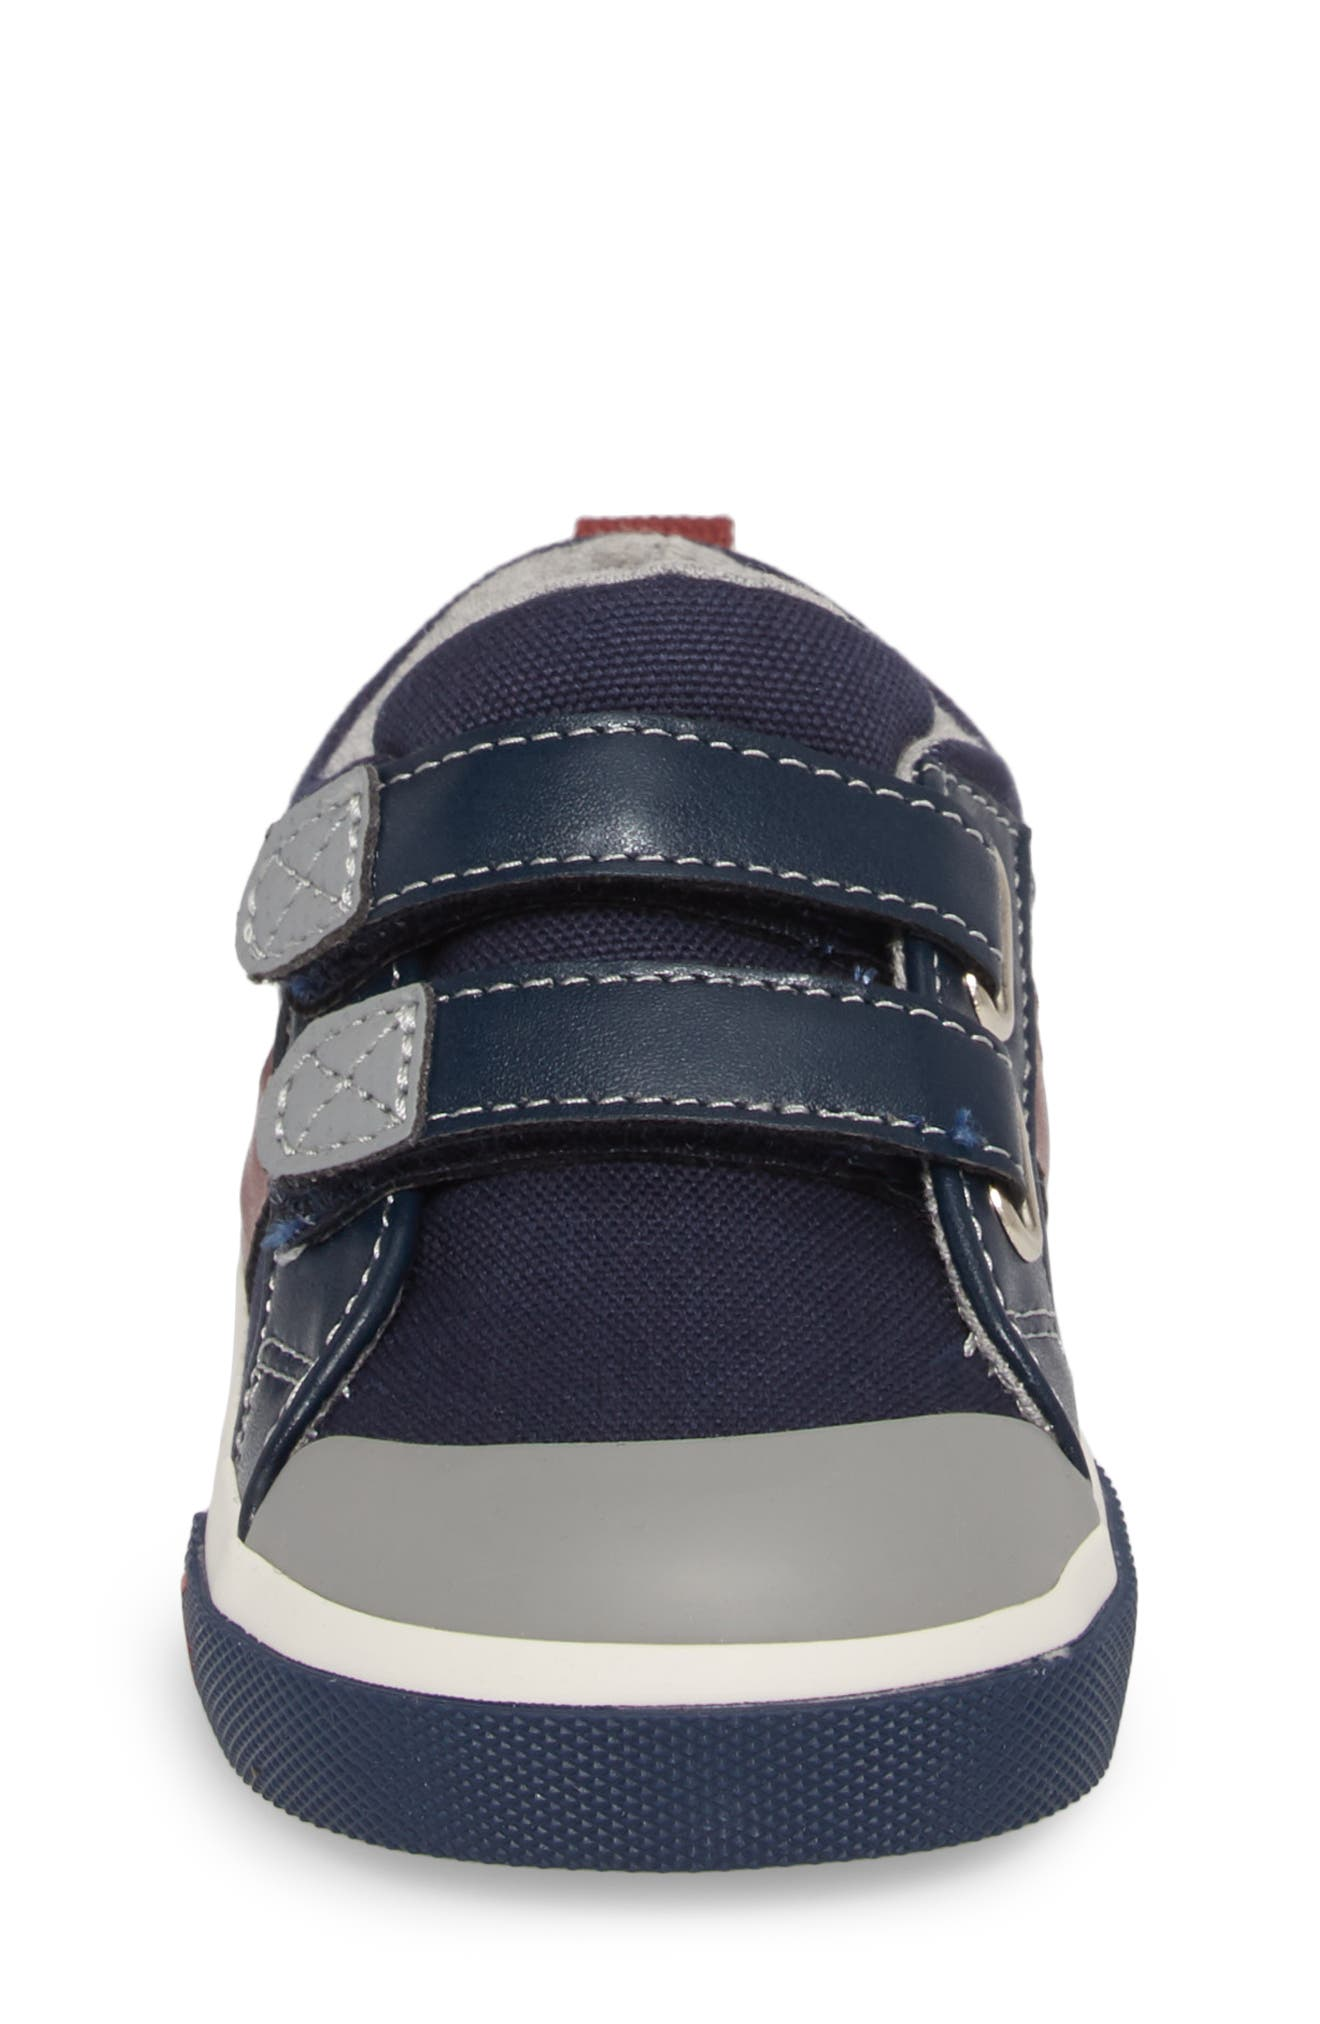 'Russell' Sneaker,                             Alternate thumbnail 4, color,                             NAVY/ RED